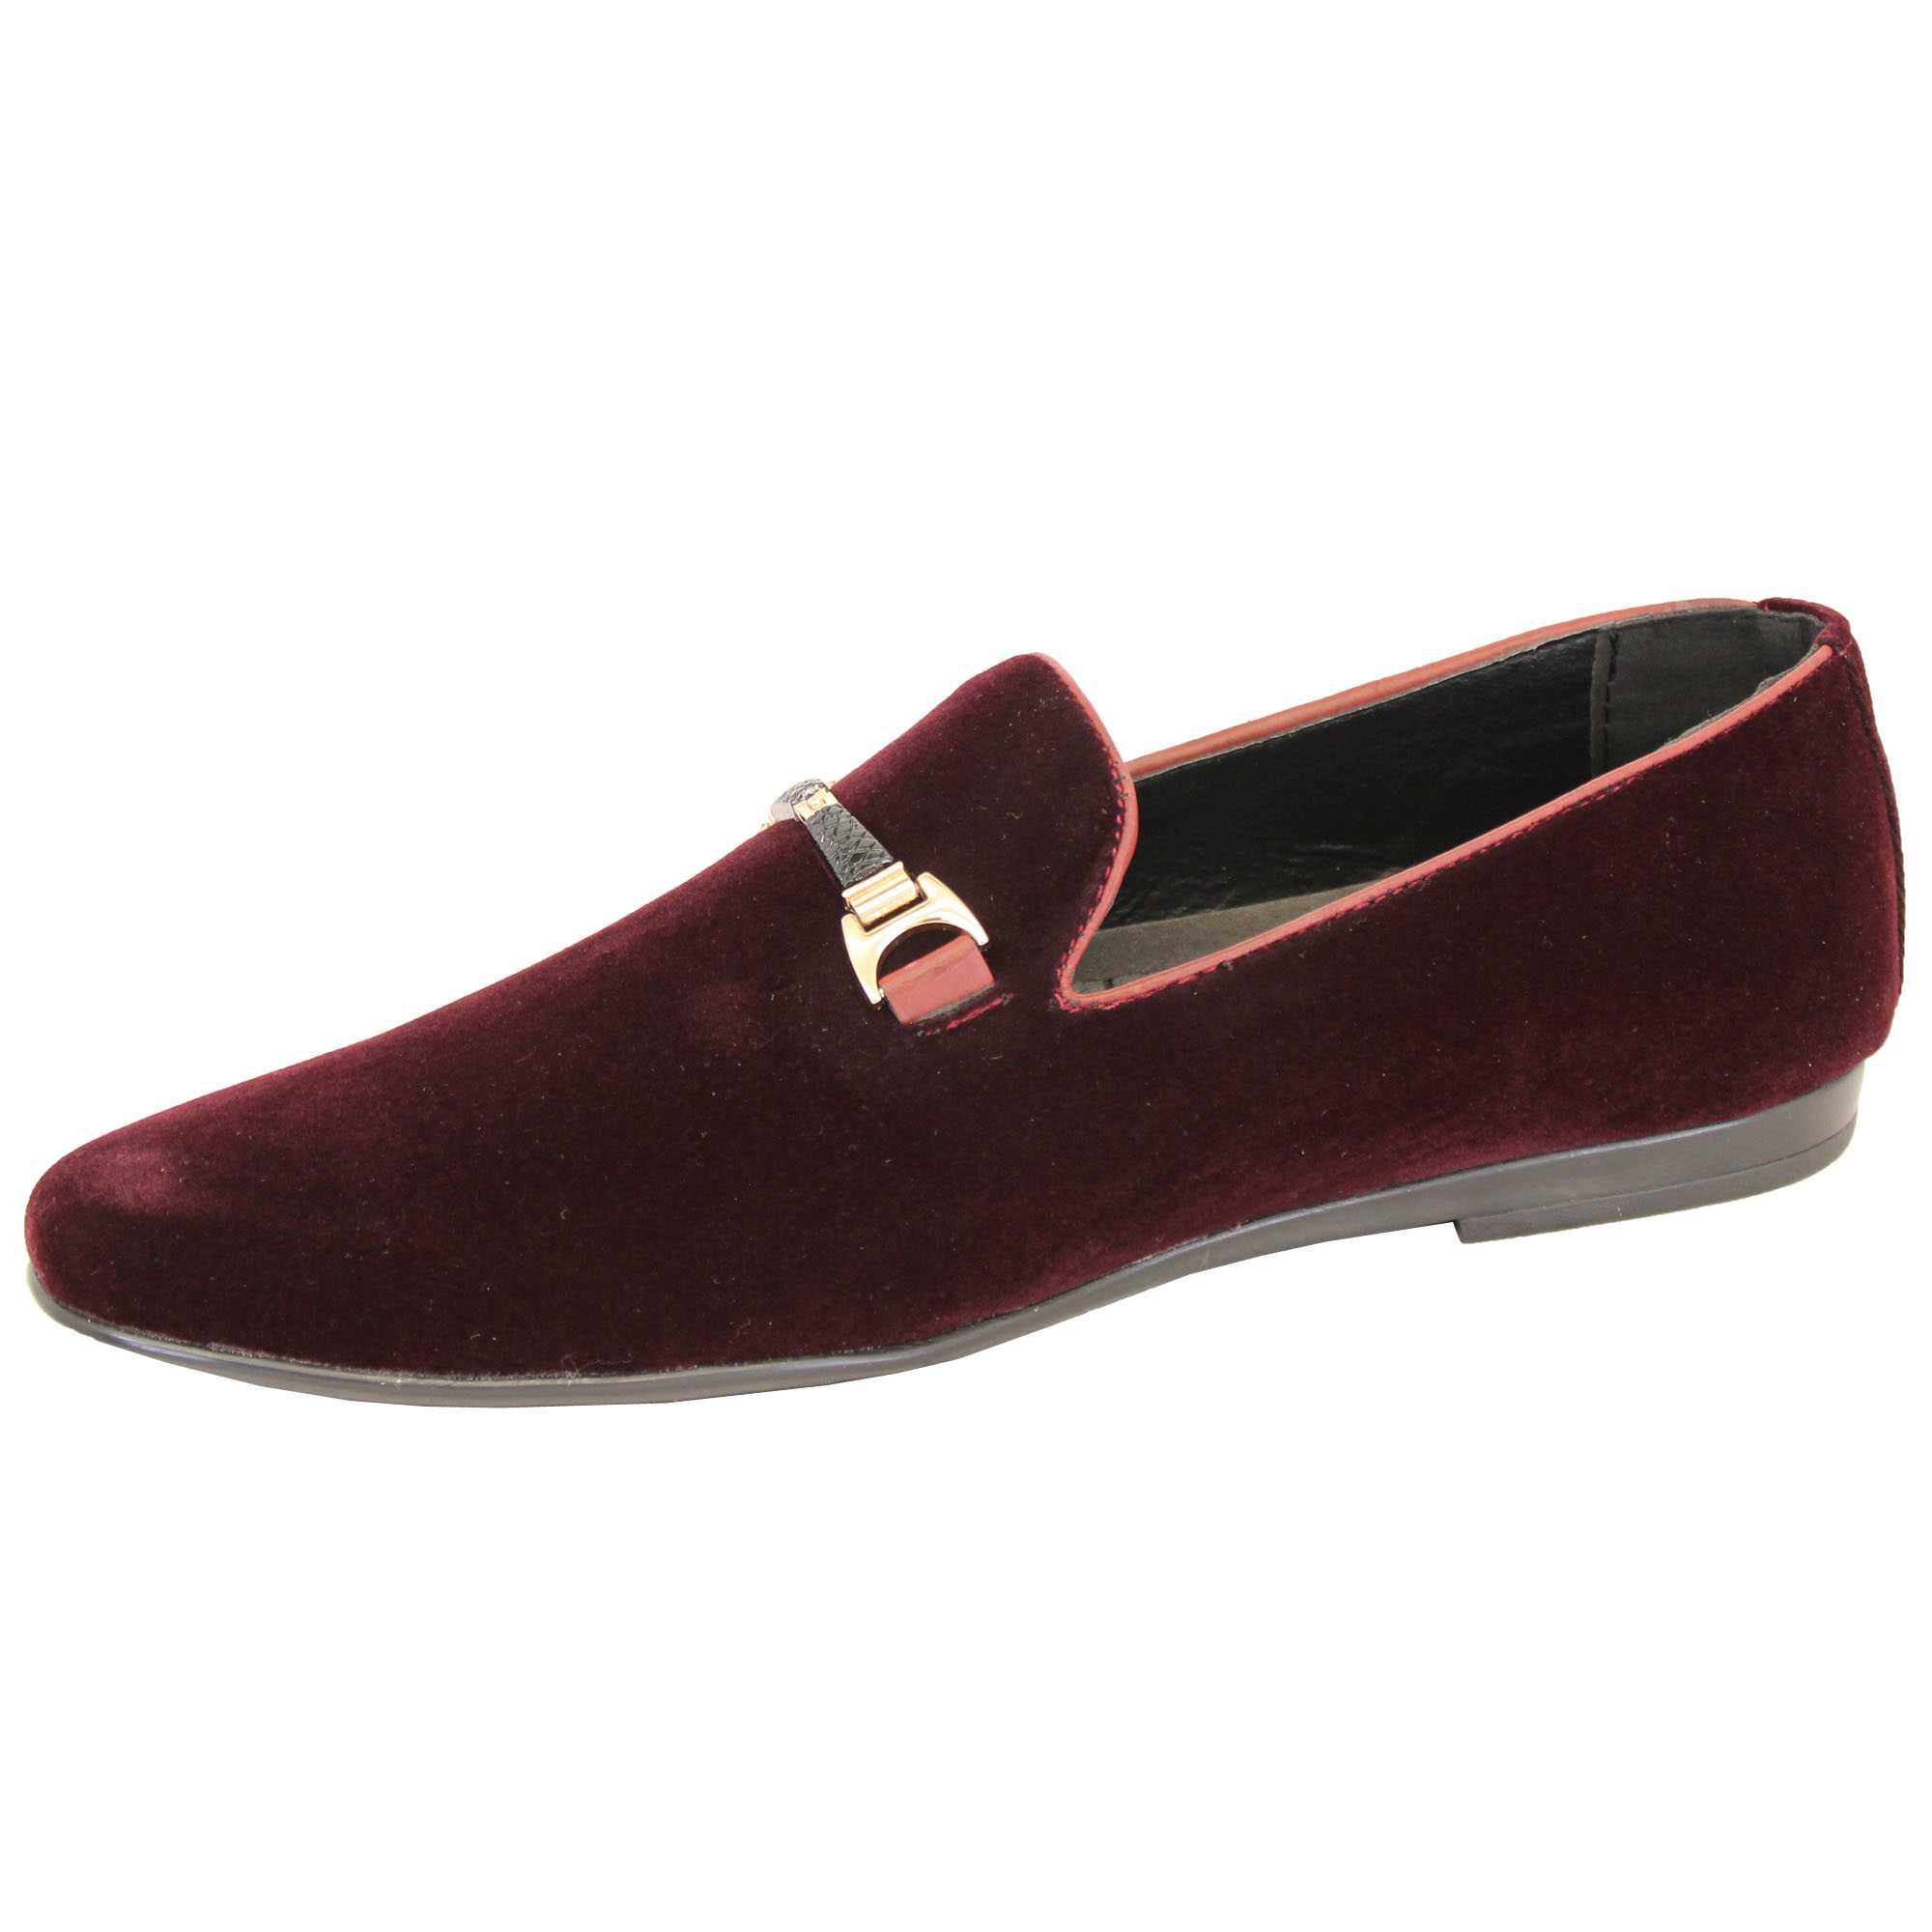 Mens-Slip-On-Italian-Shoes-Designer-Loafers-Suede-Look-Moccasin-Style-Fashion thumbnail 15